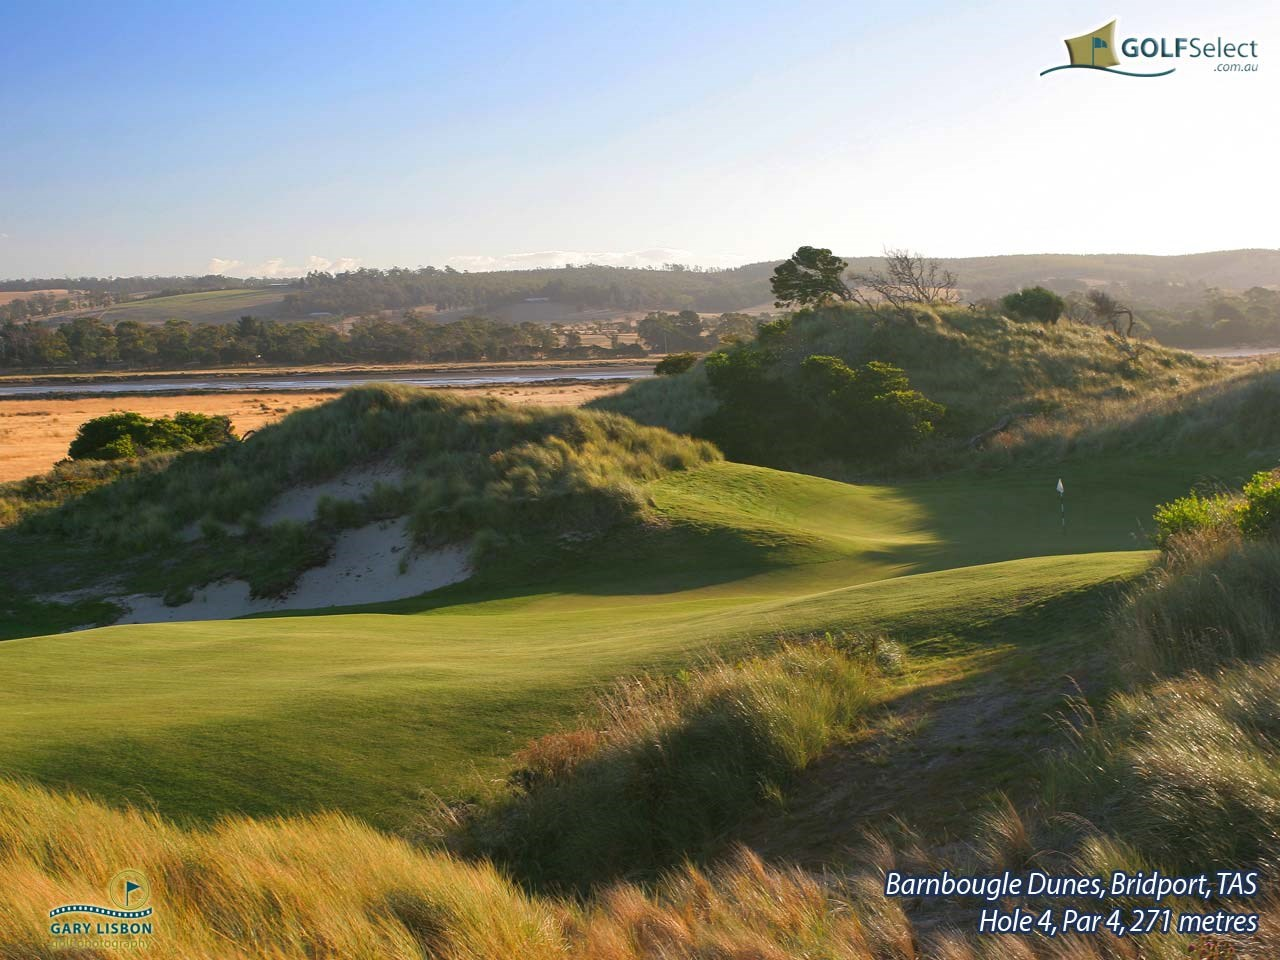 Barnbougle Dunes Golf Links Hole 4, Par 4, 271 metres